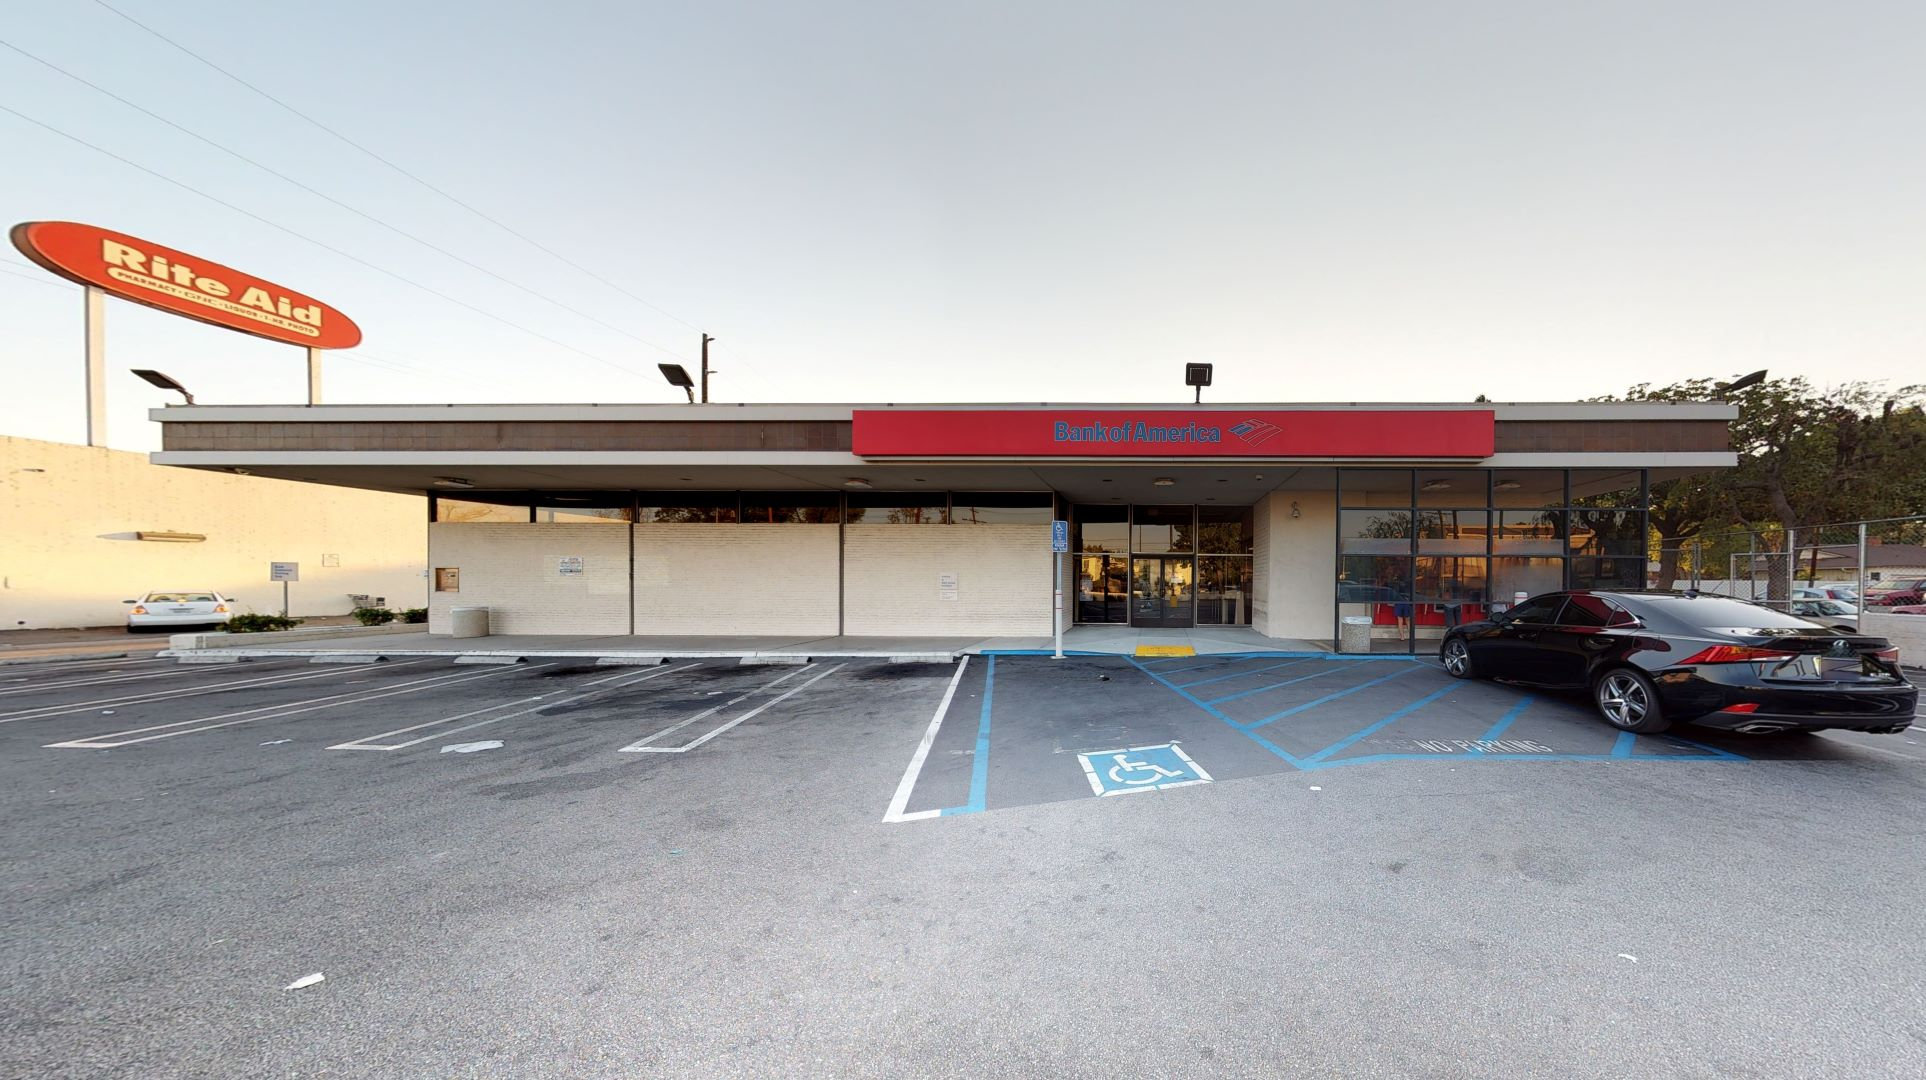 Bank of America financial center with walk-up ATM | 7255 Woodman Ave, Van Nuys, CA 91405